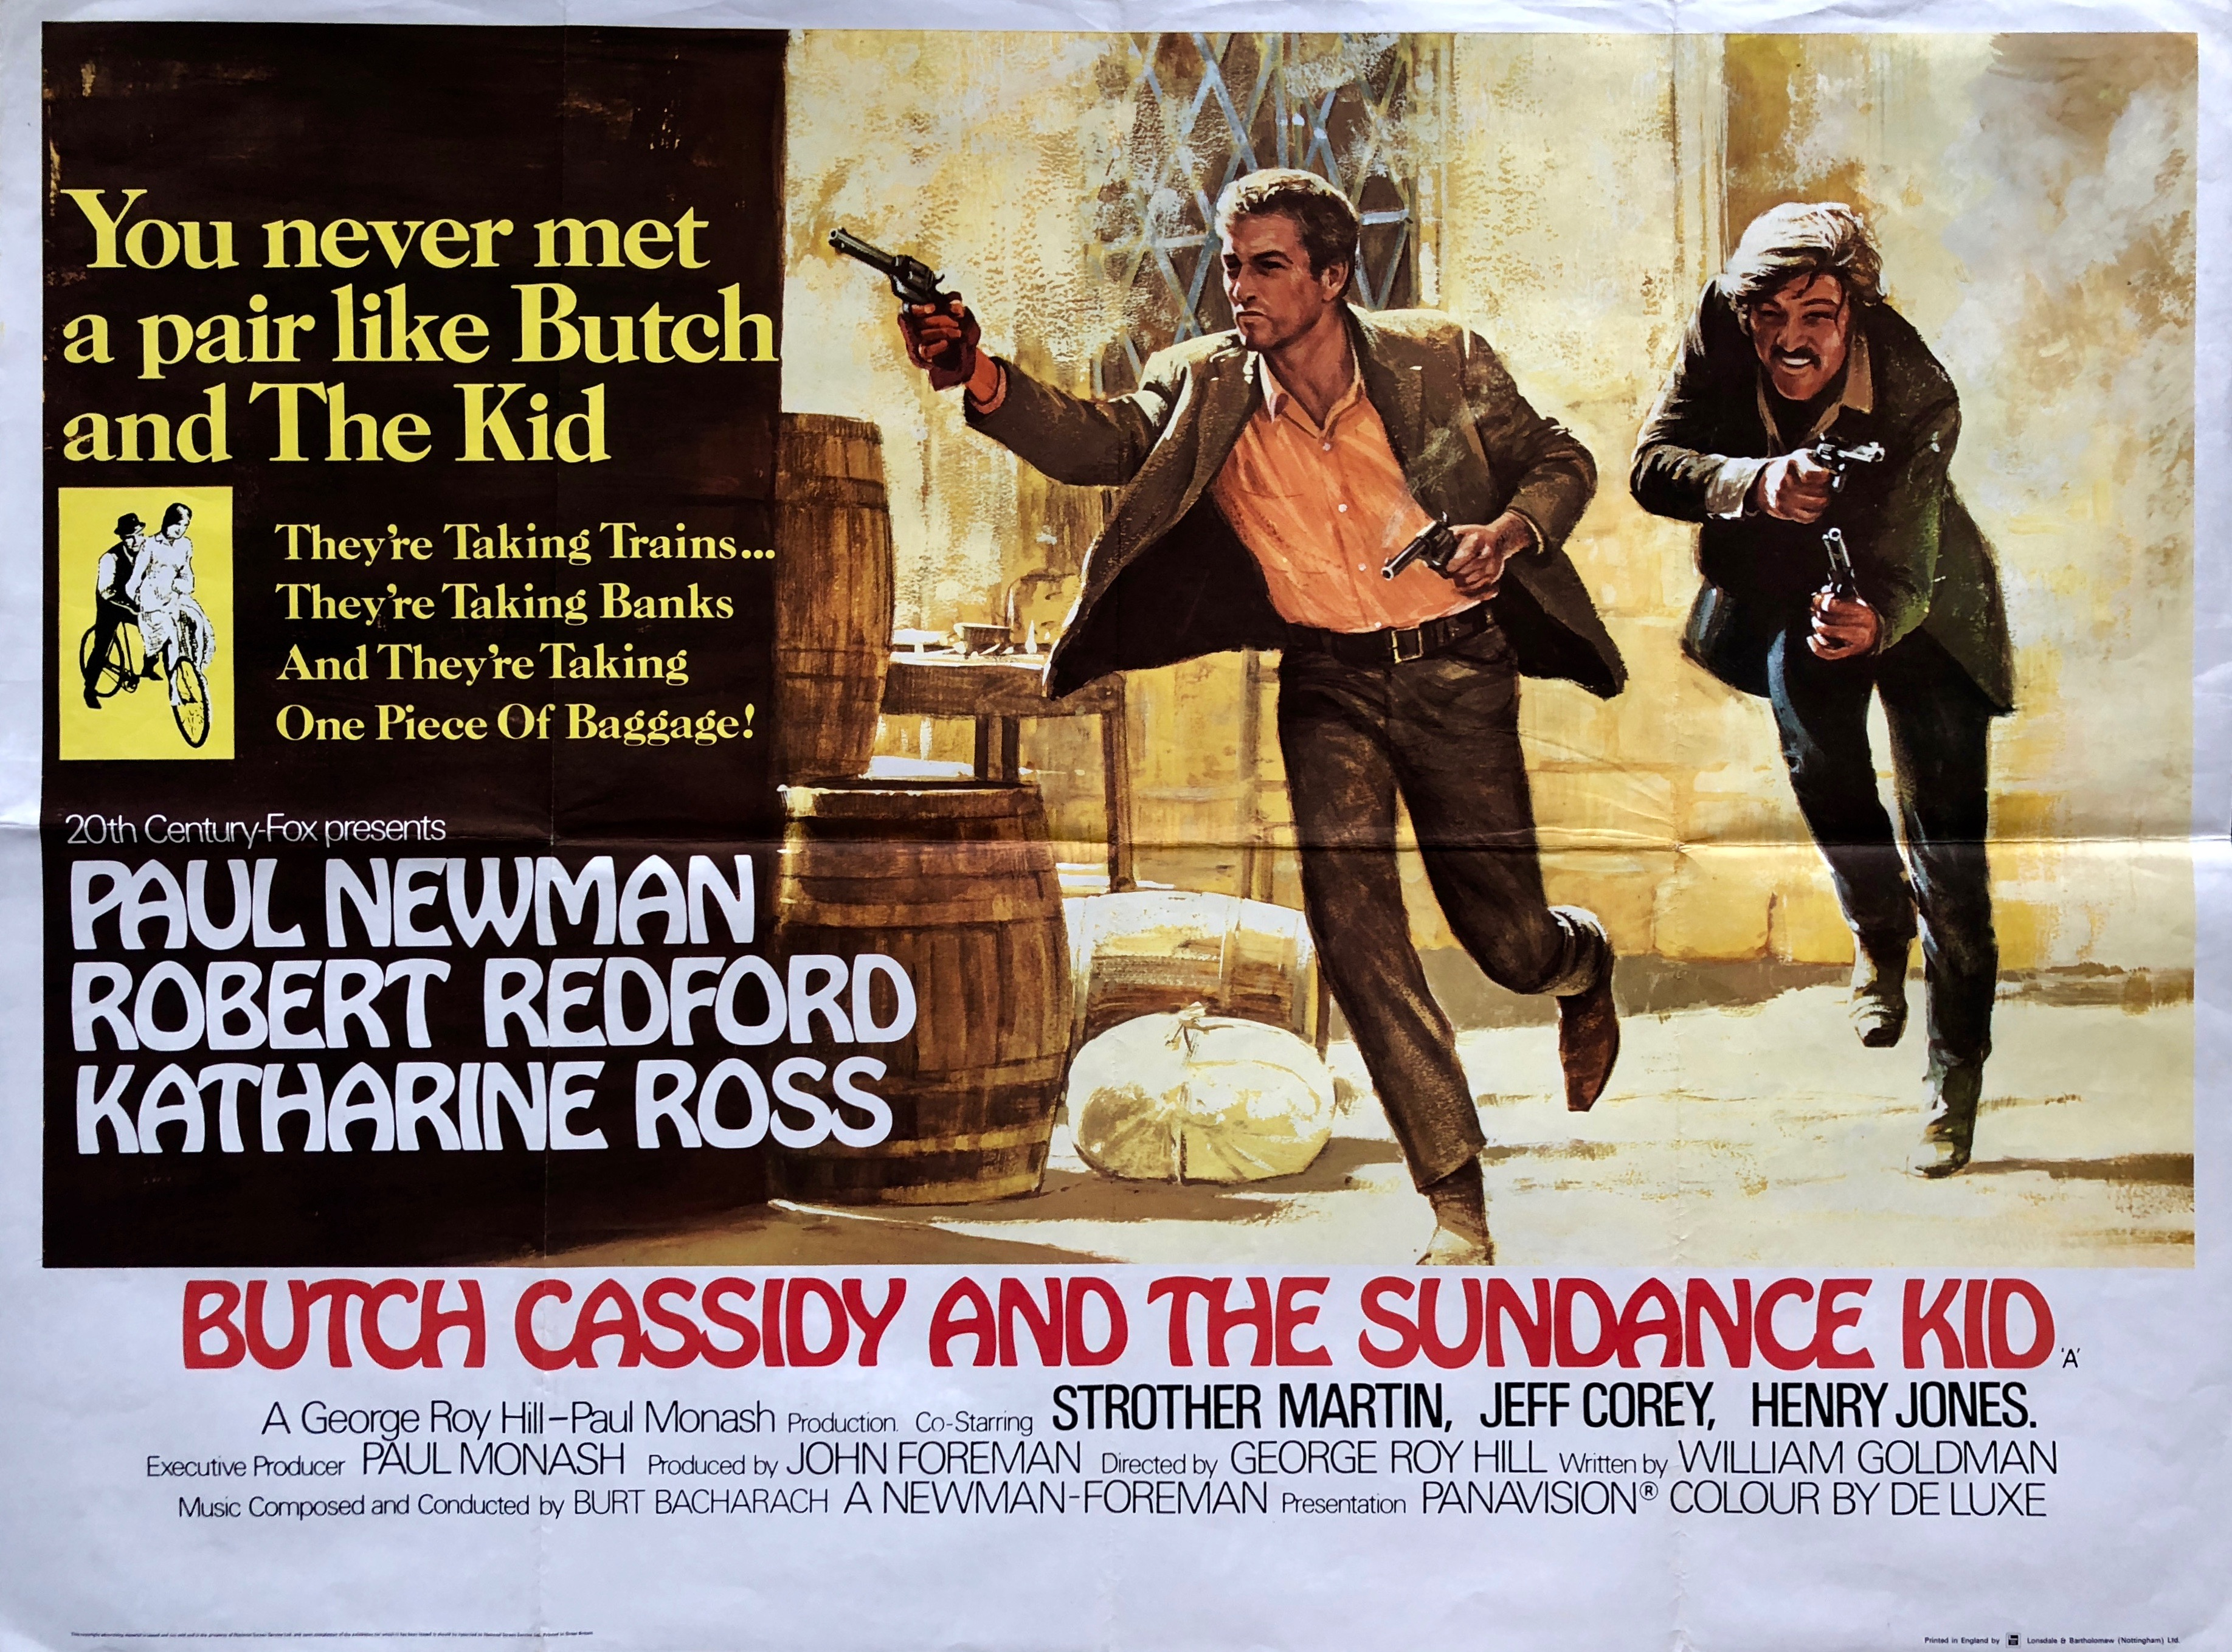 Original Butch Cassidy and the Sundance Kid - Western - Paul Newman